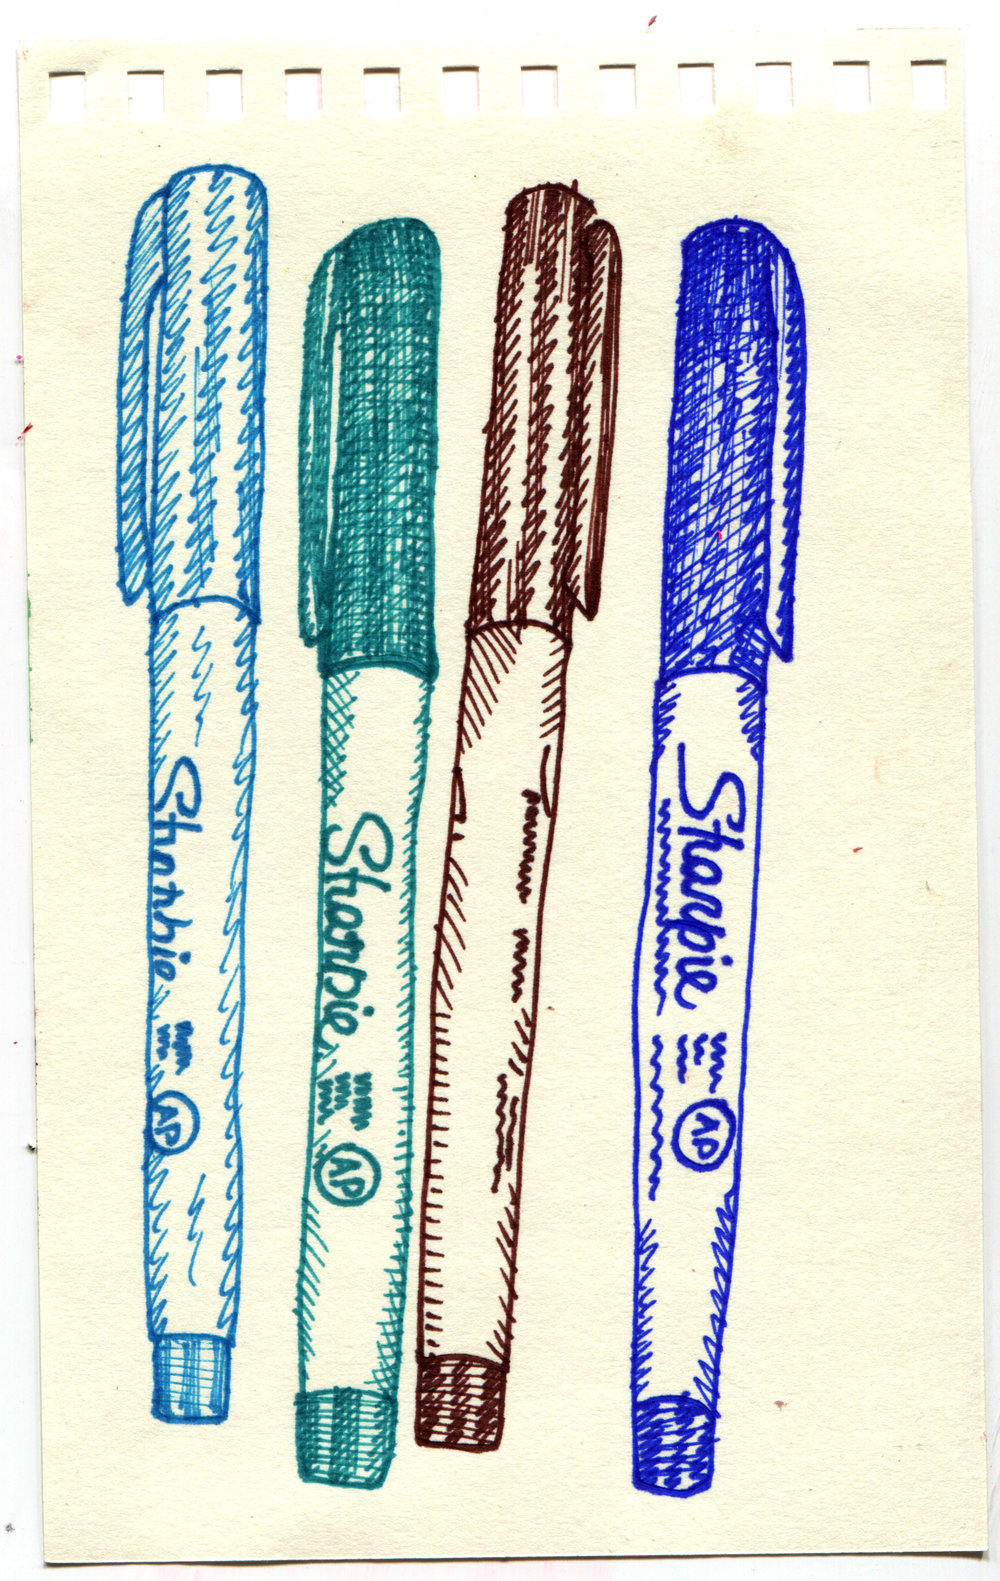 Sharpies